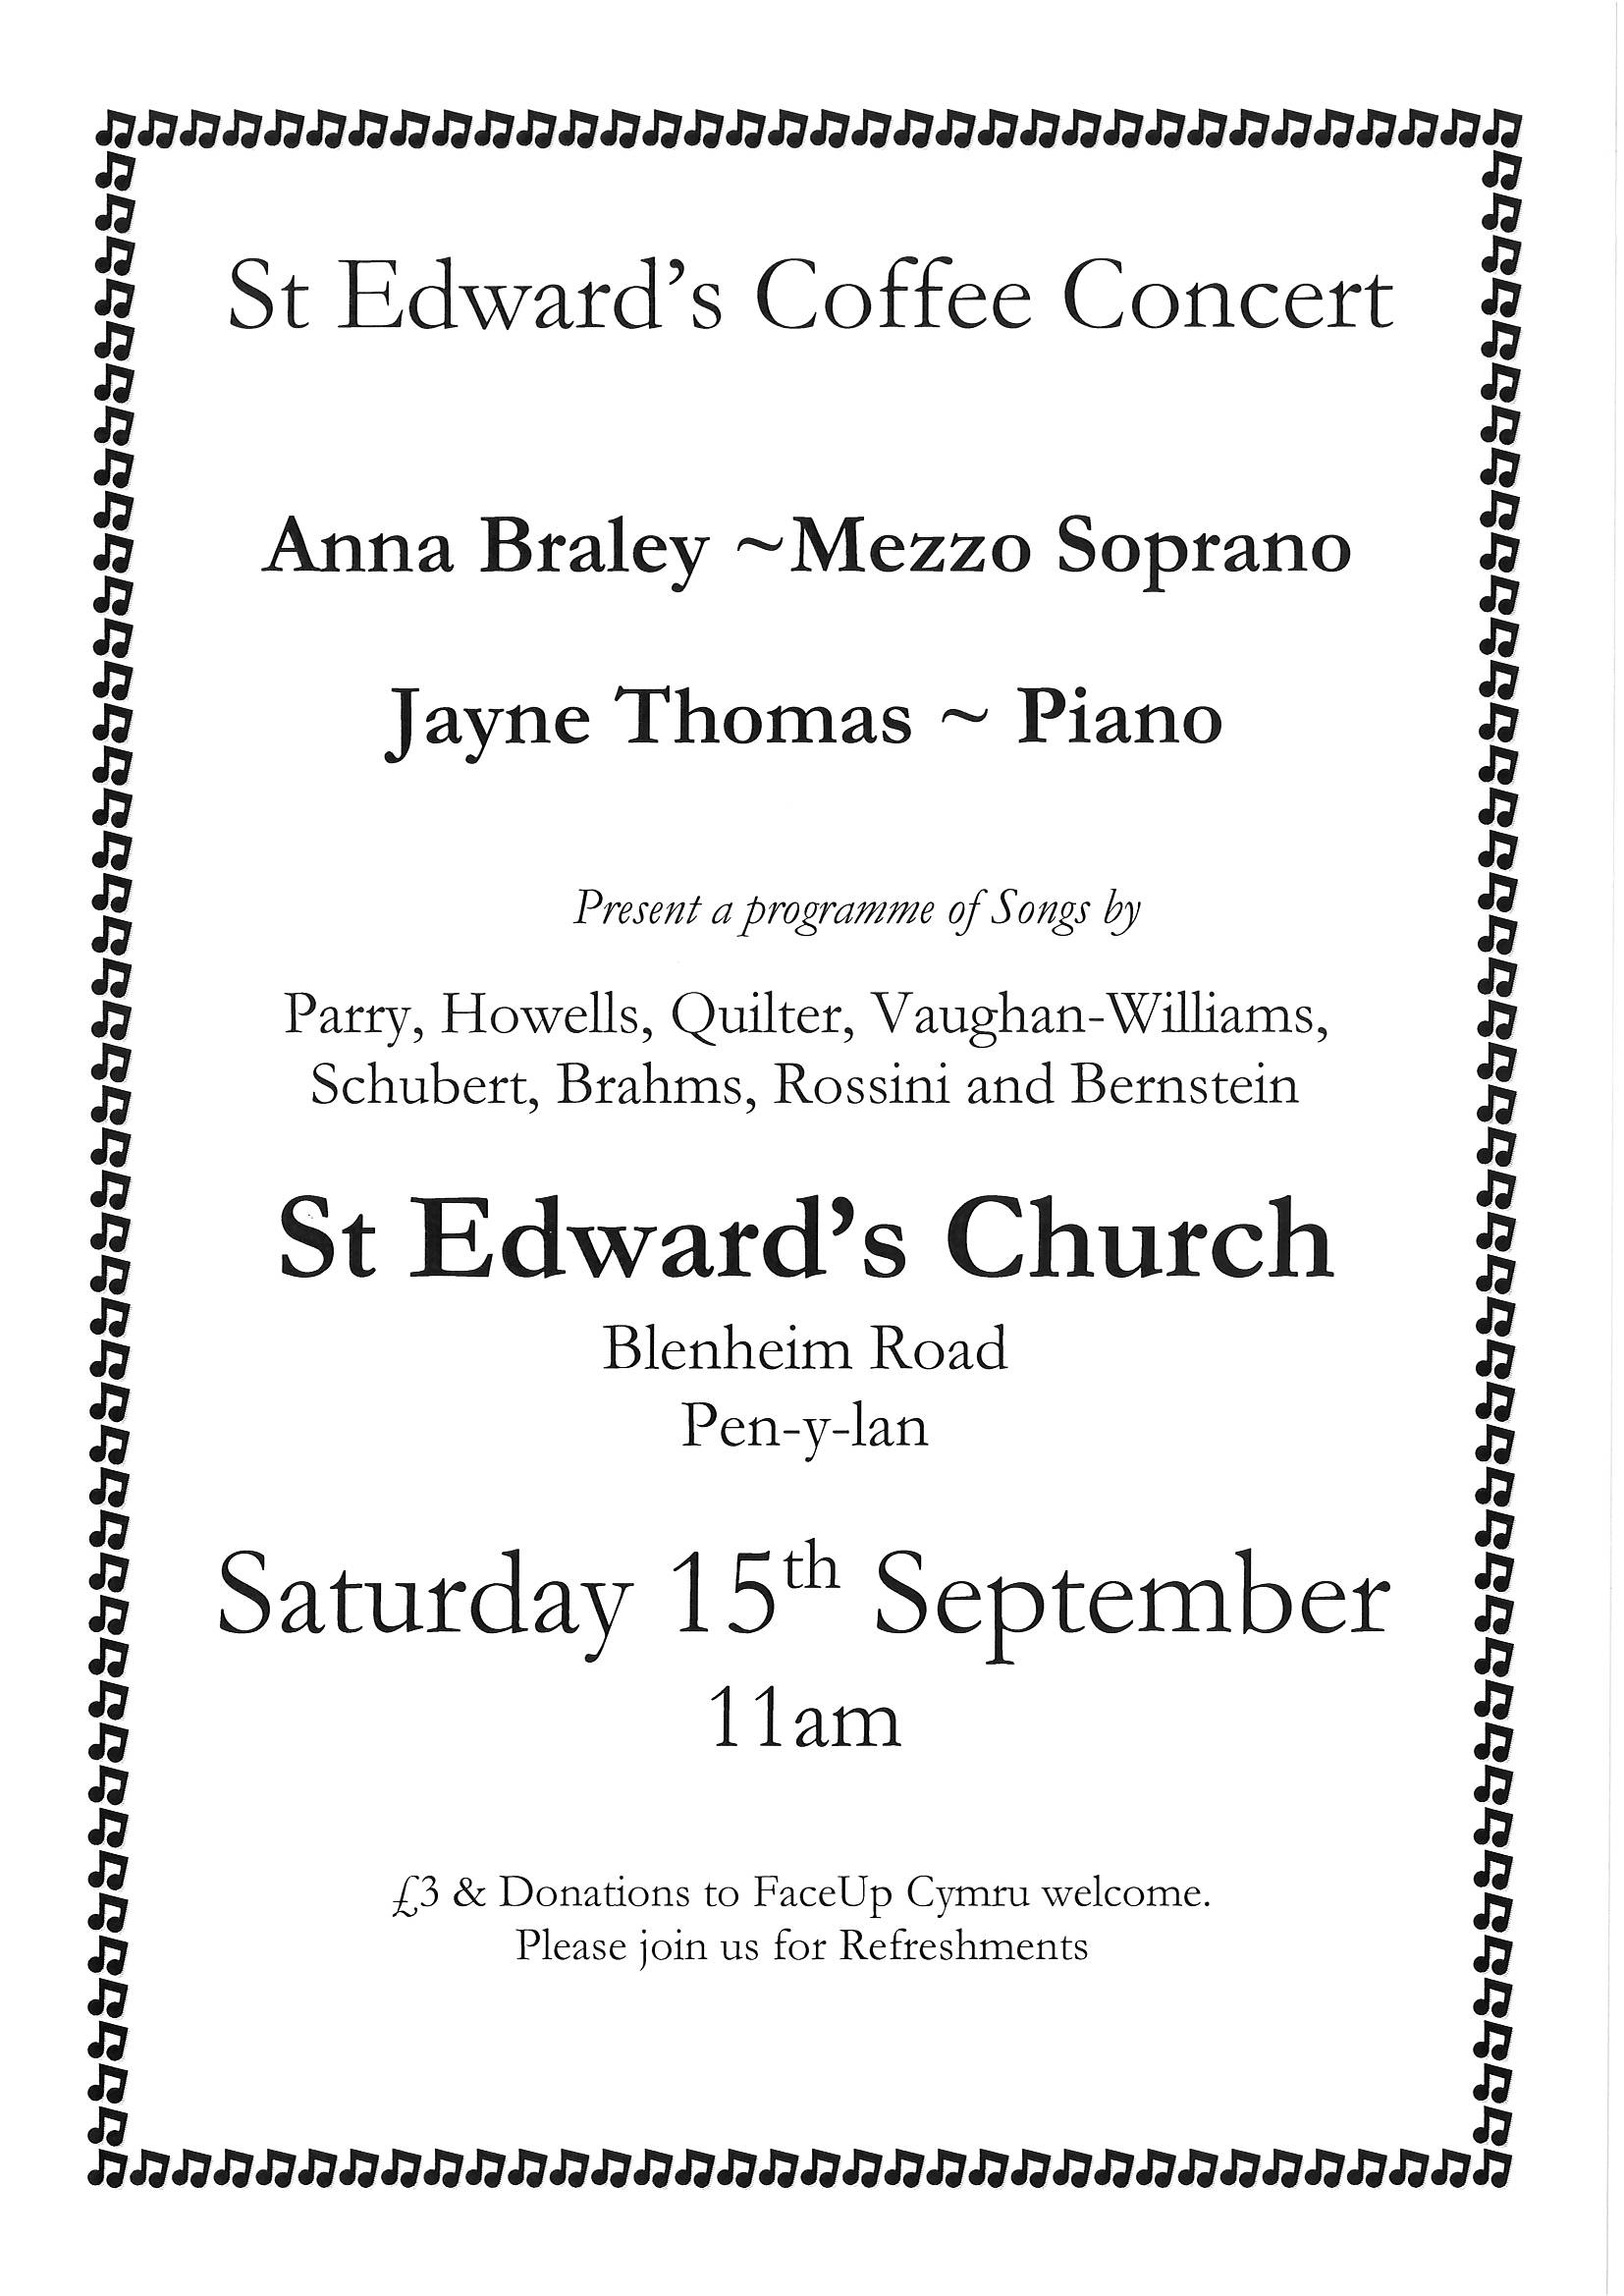 St Edward's Coffee Concert – Saturday, 15th September 2018